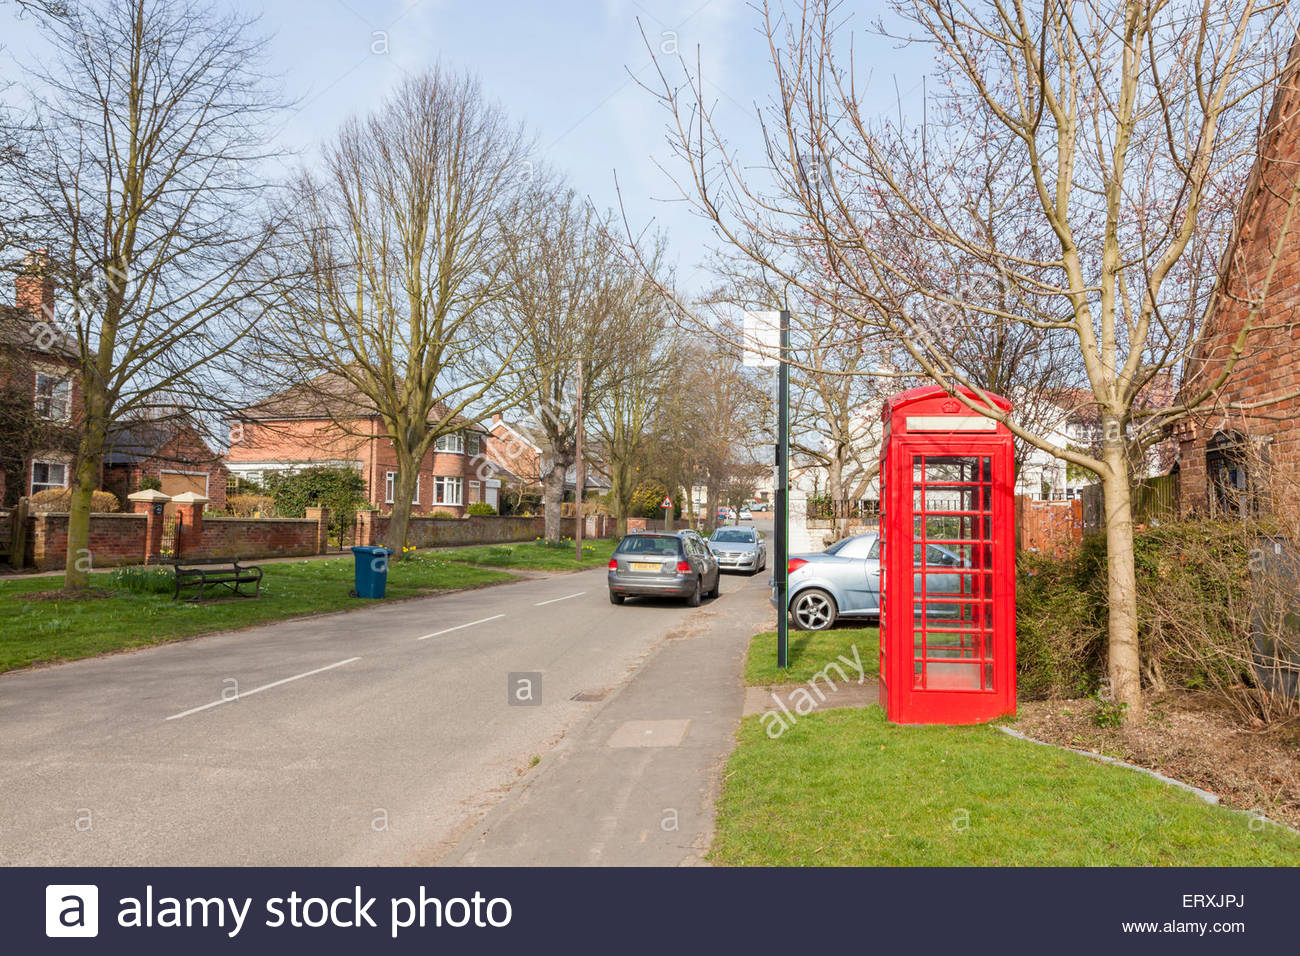 Red telephone box on a village street, Wysall, Nottinghamshire, England, UK - Stock Image